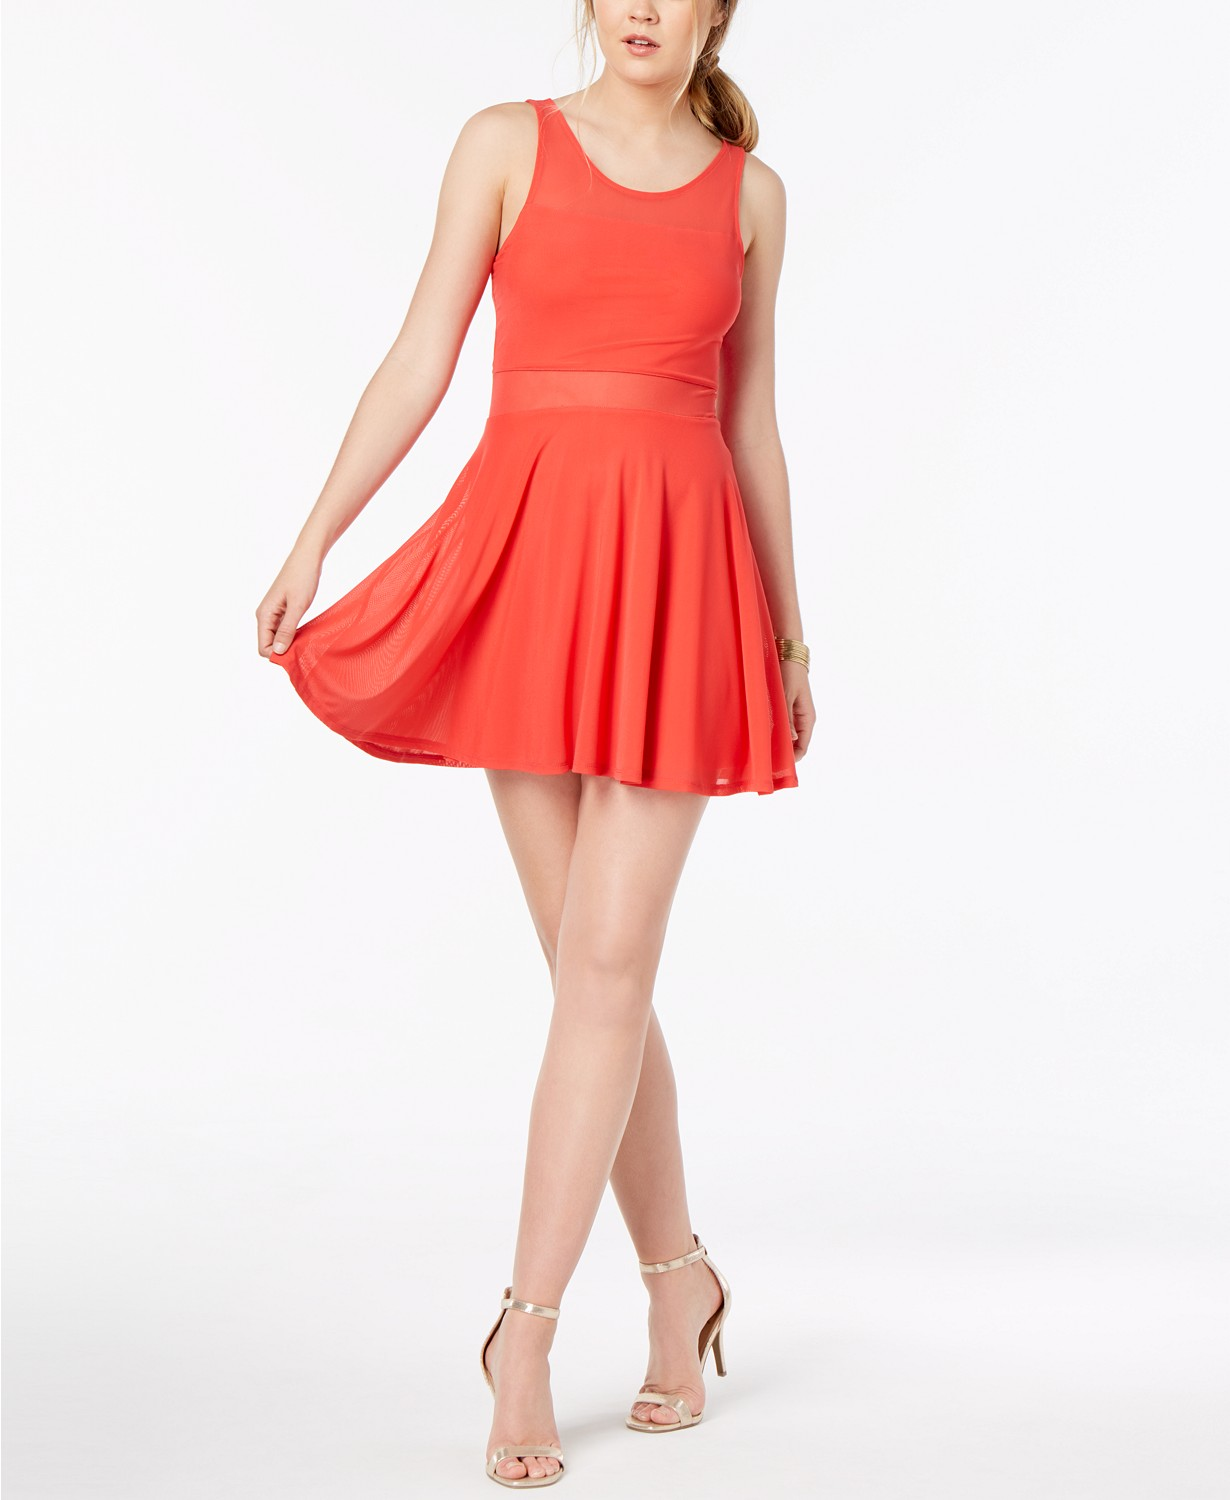 Material Girl Fit and Flare Dress.jpg